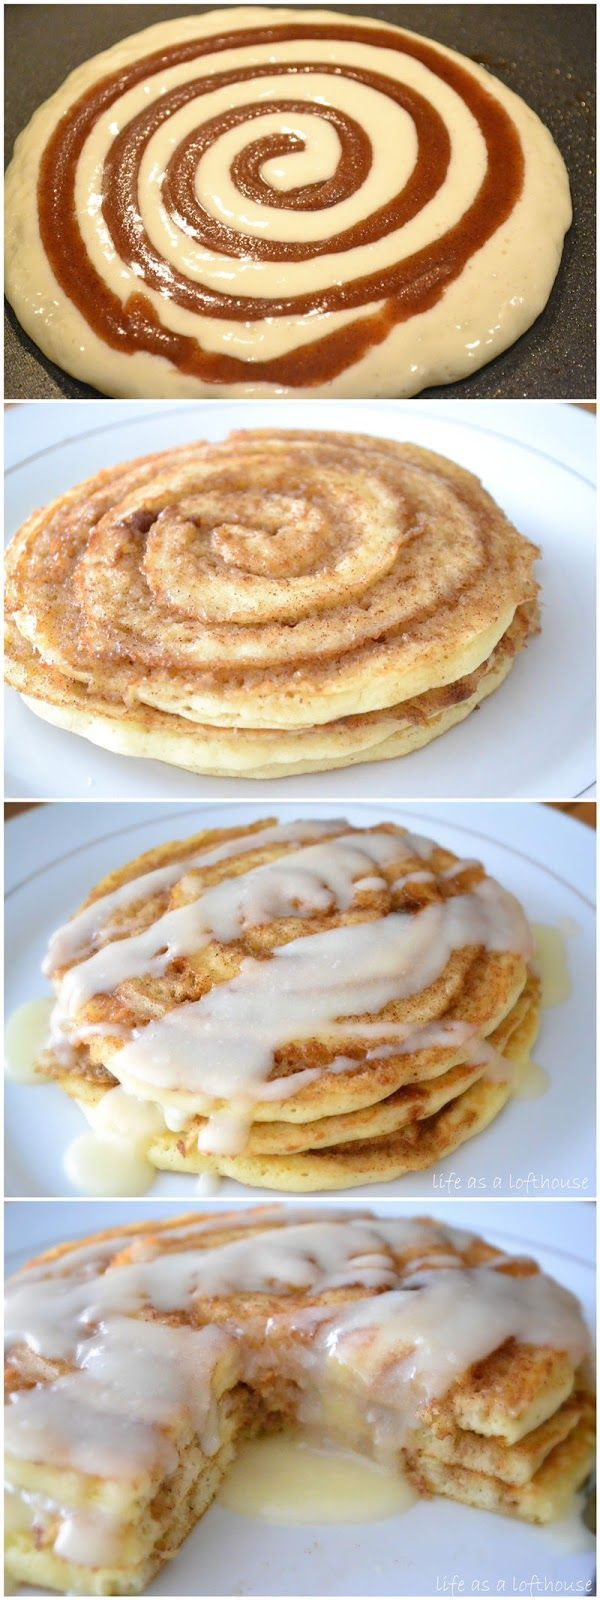 toptenlook: Cinnamon Roll Pancakes OMG, yum!! And such simple everyday ingredients!!